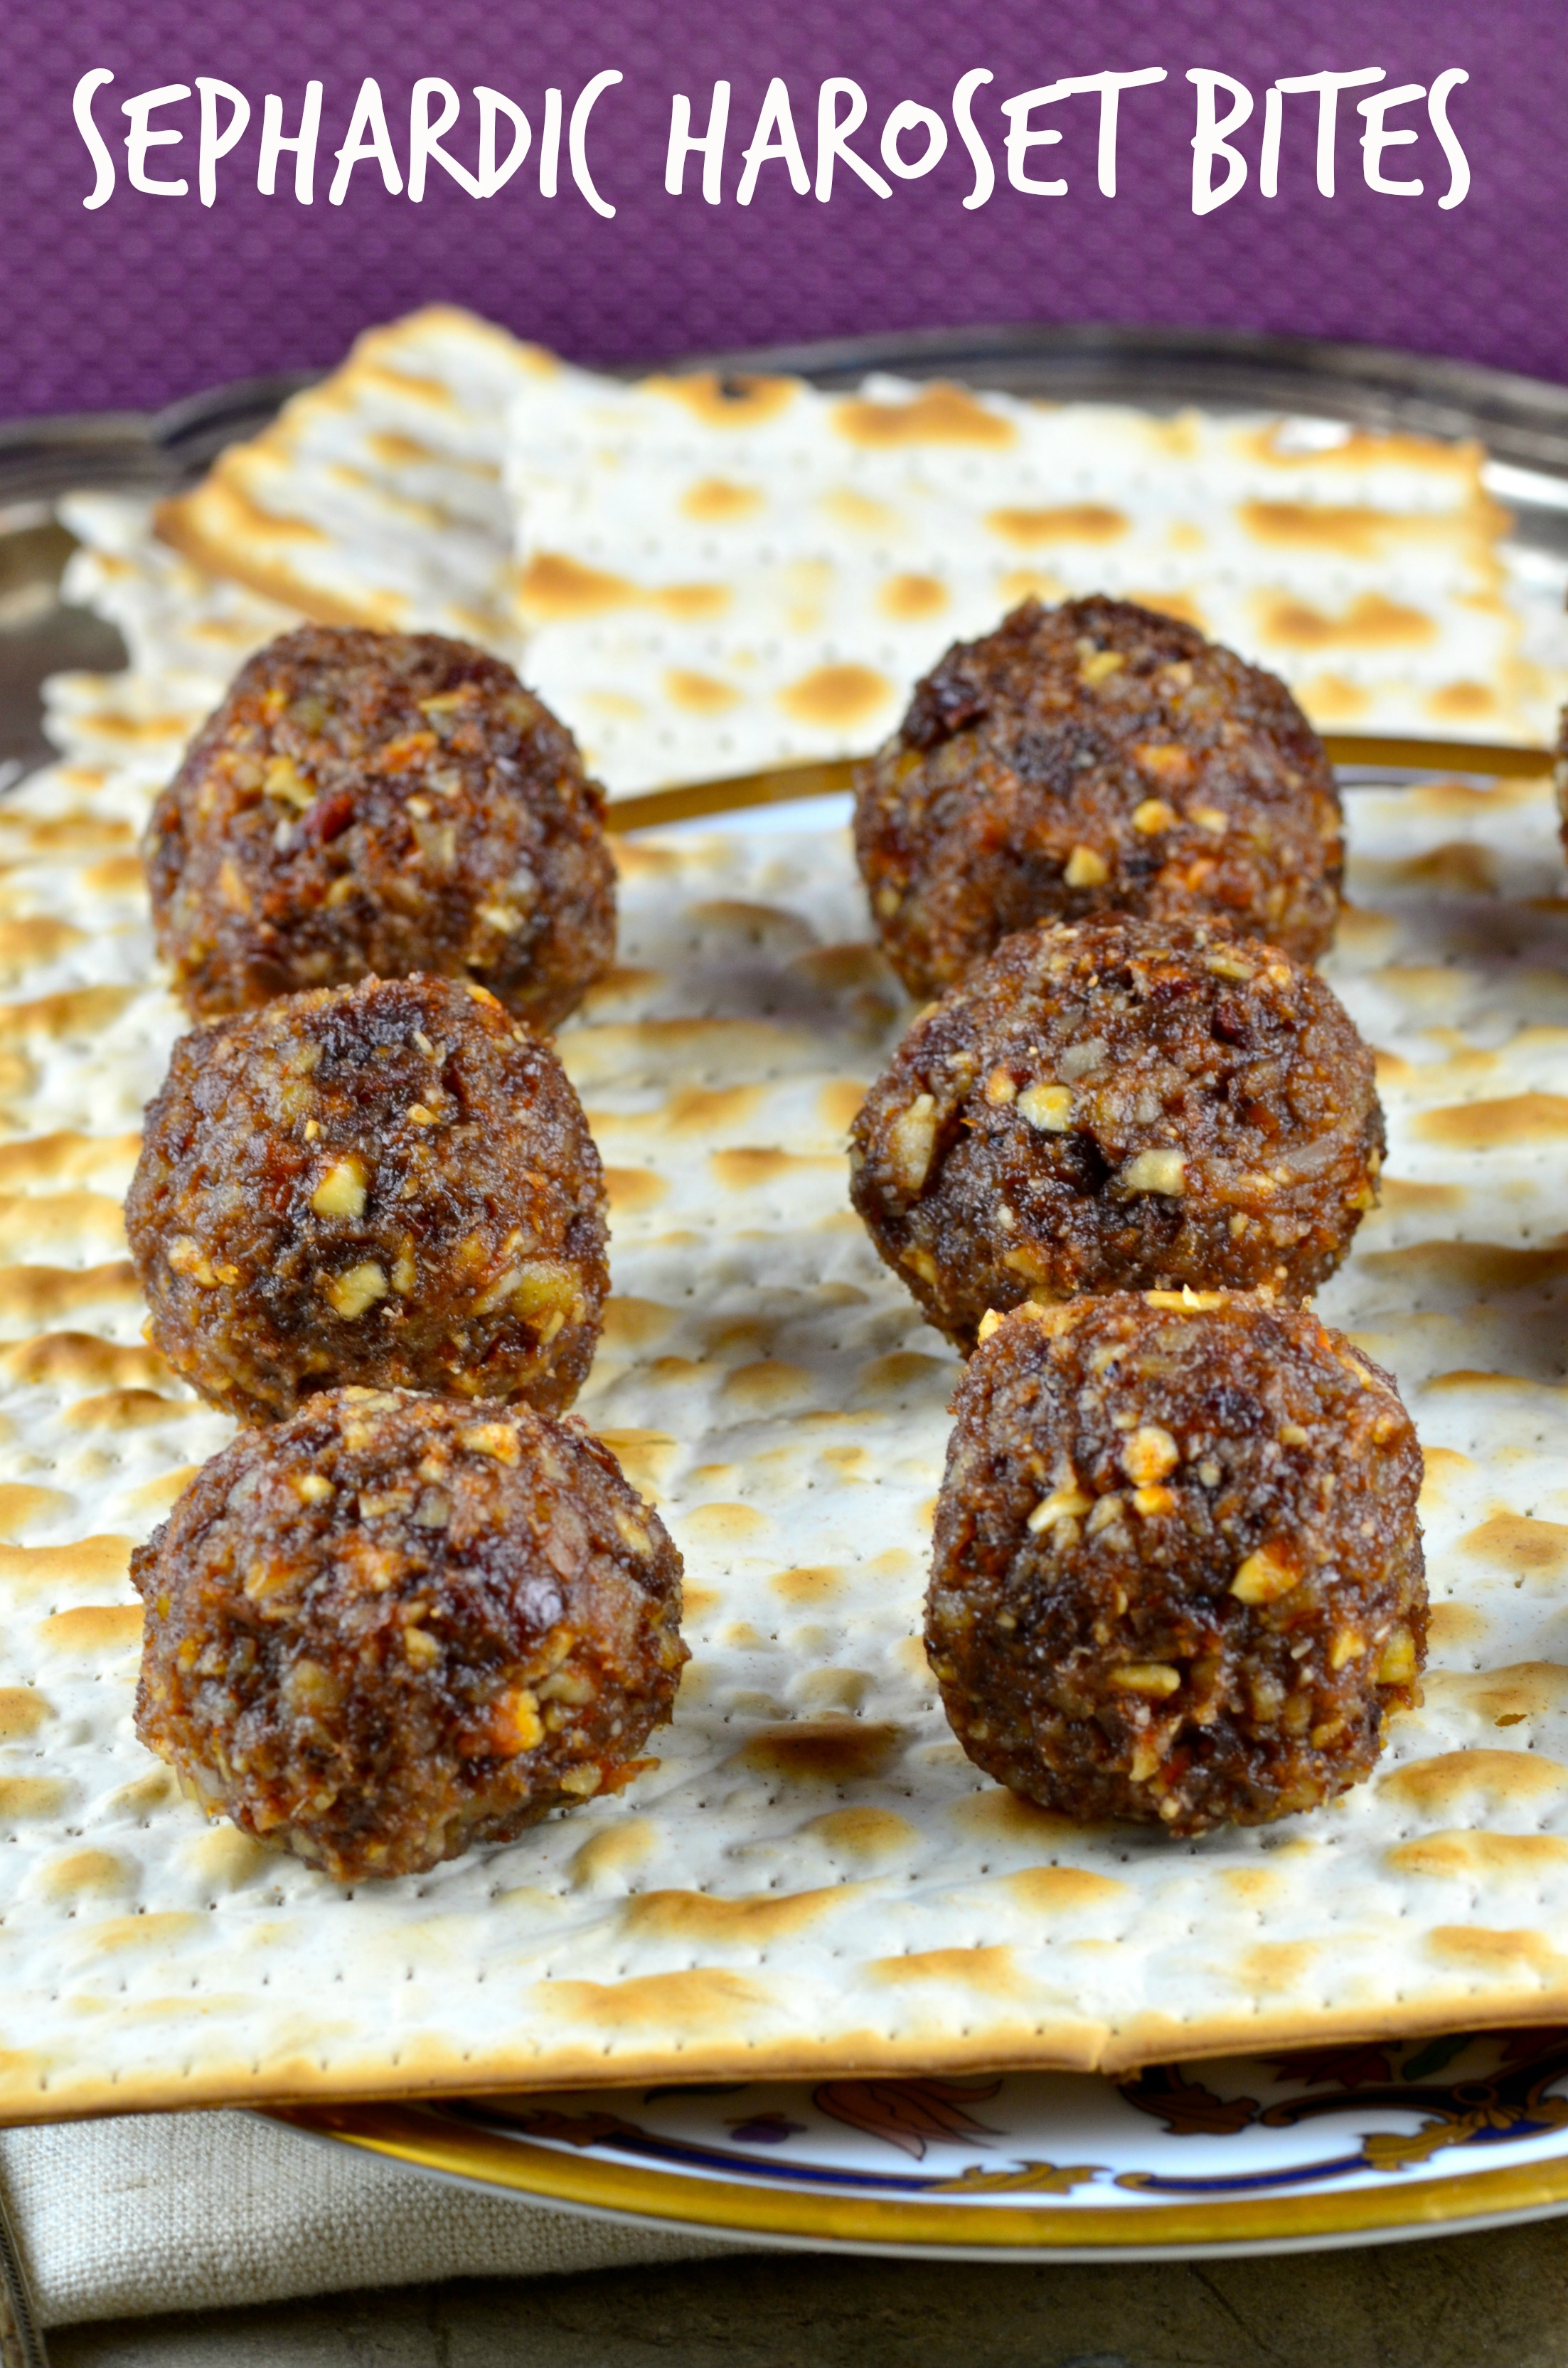 Dates are the base for many charoset recipes from the Sephar..